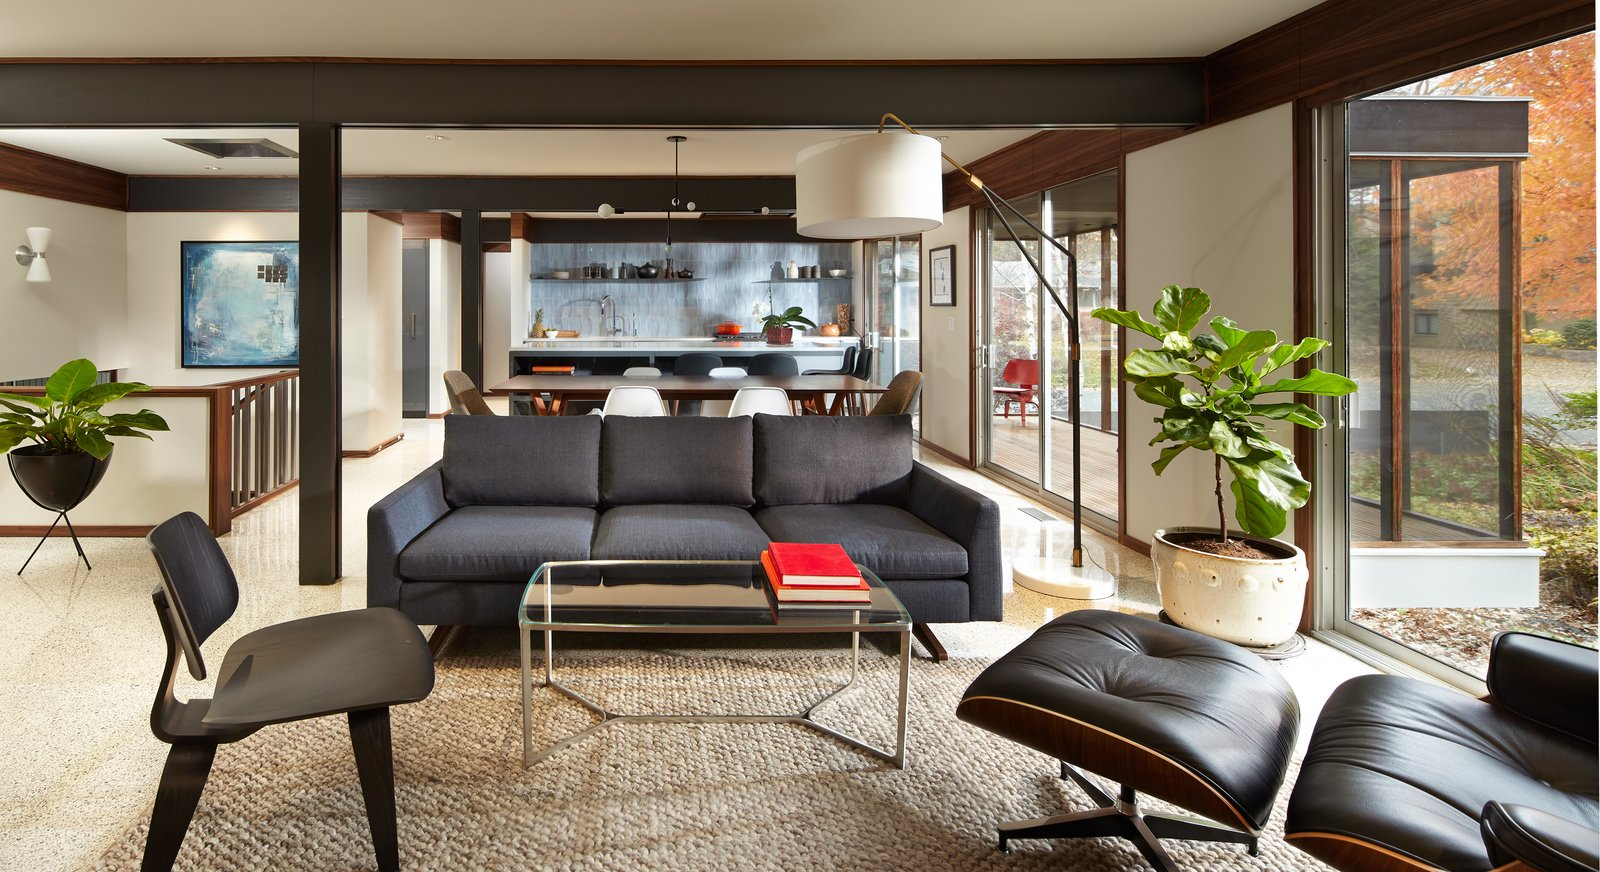 Tagged: Living Room, Chair, Sofa, and Floor Lighting. South Tyrol Mid-Century by Peterssen/Keller Architecture